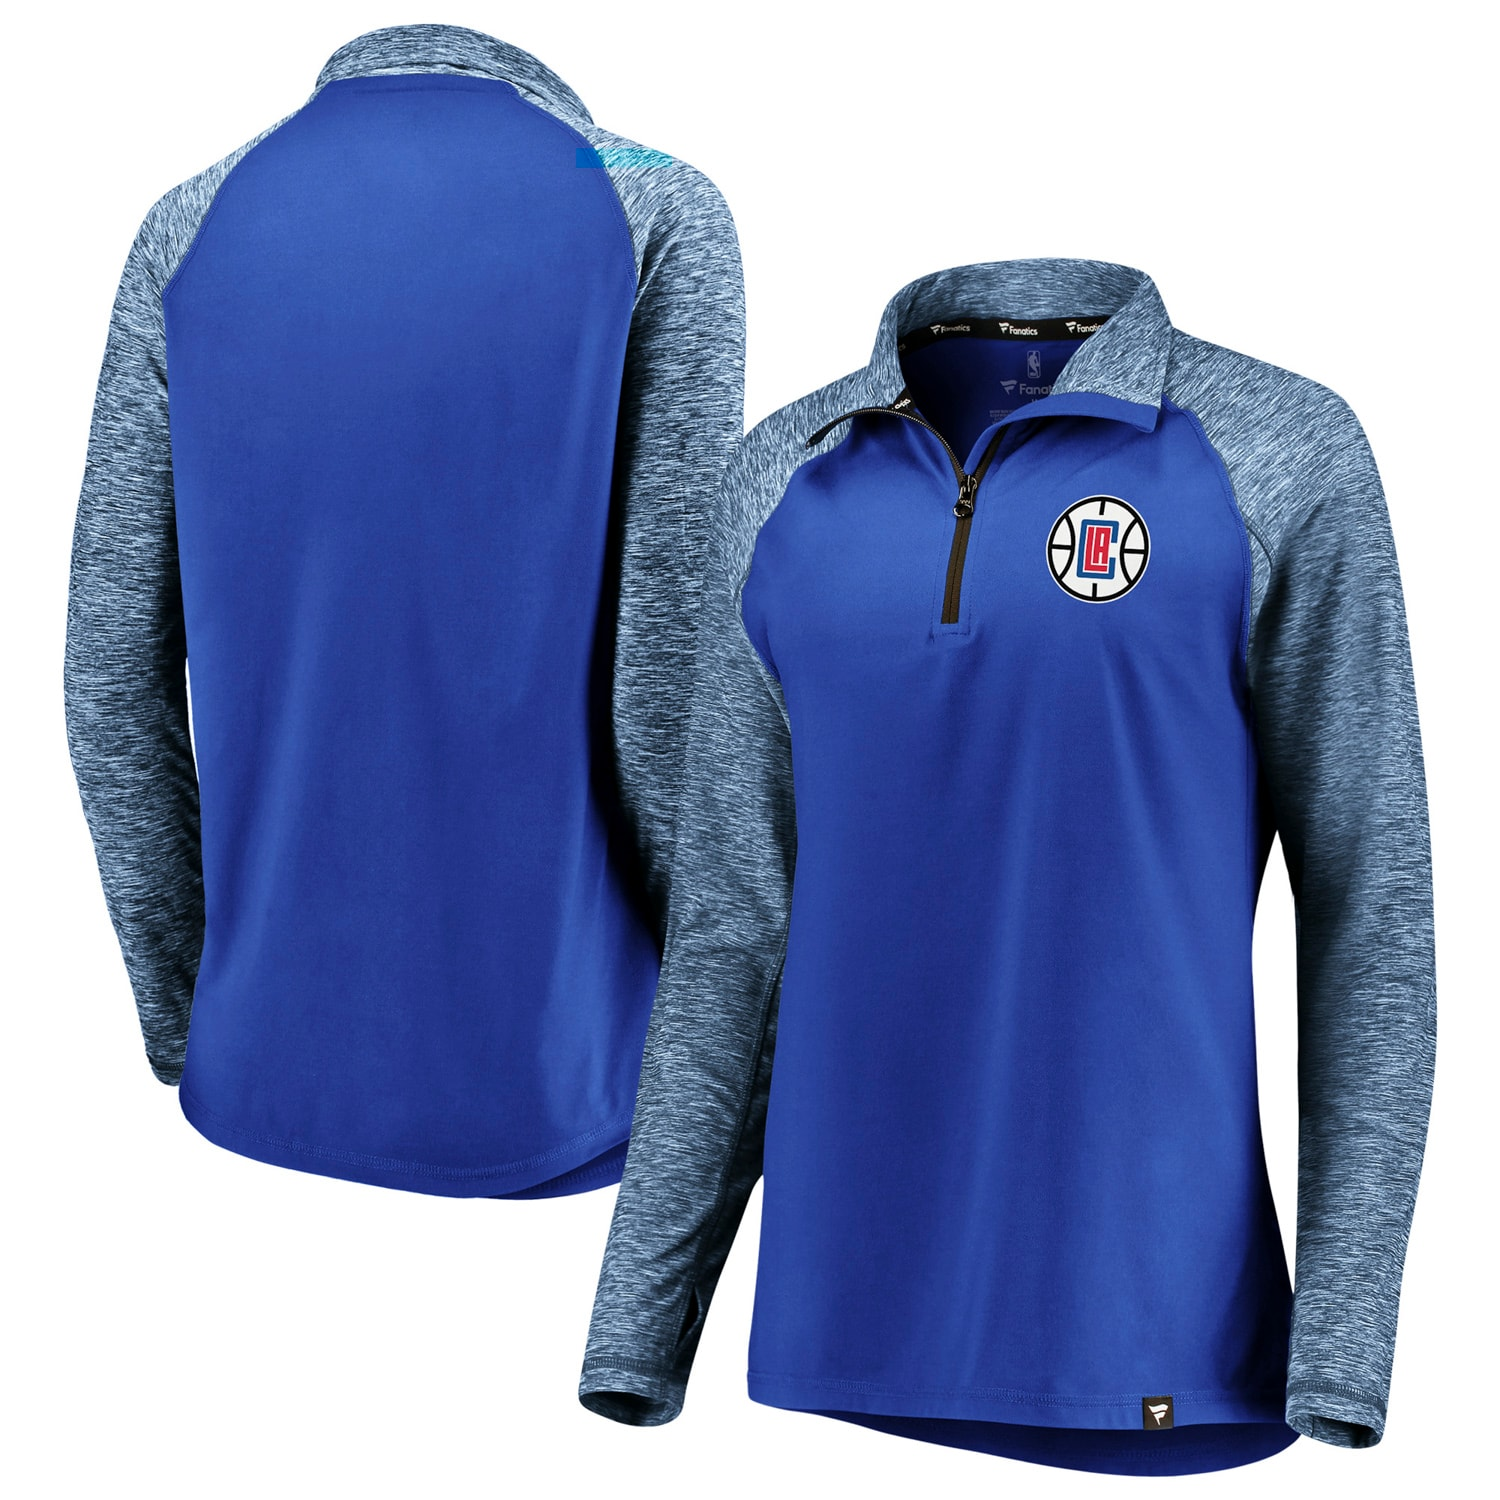 LA Clippers Fanatics Branded Women's Made to Move Static Performance Raglan Sleeve Quarter-Zip Pullover Jacket - Royal/Heathered Royal